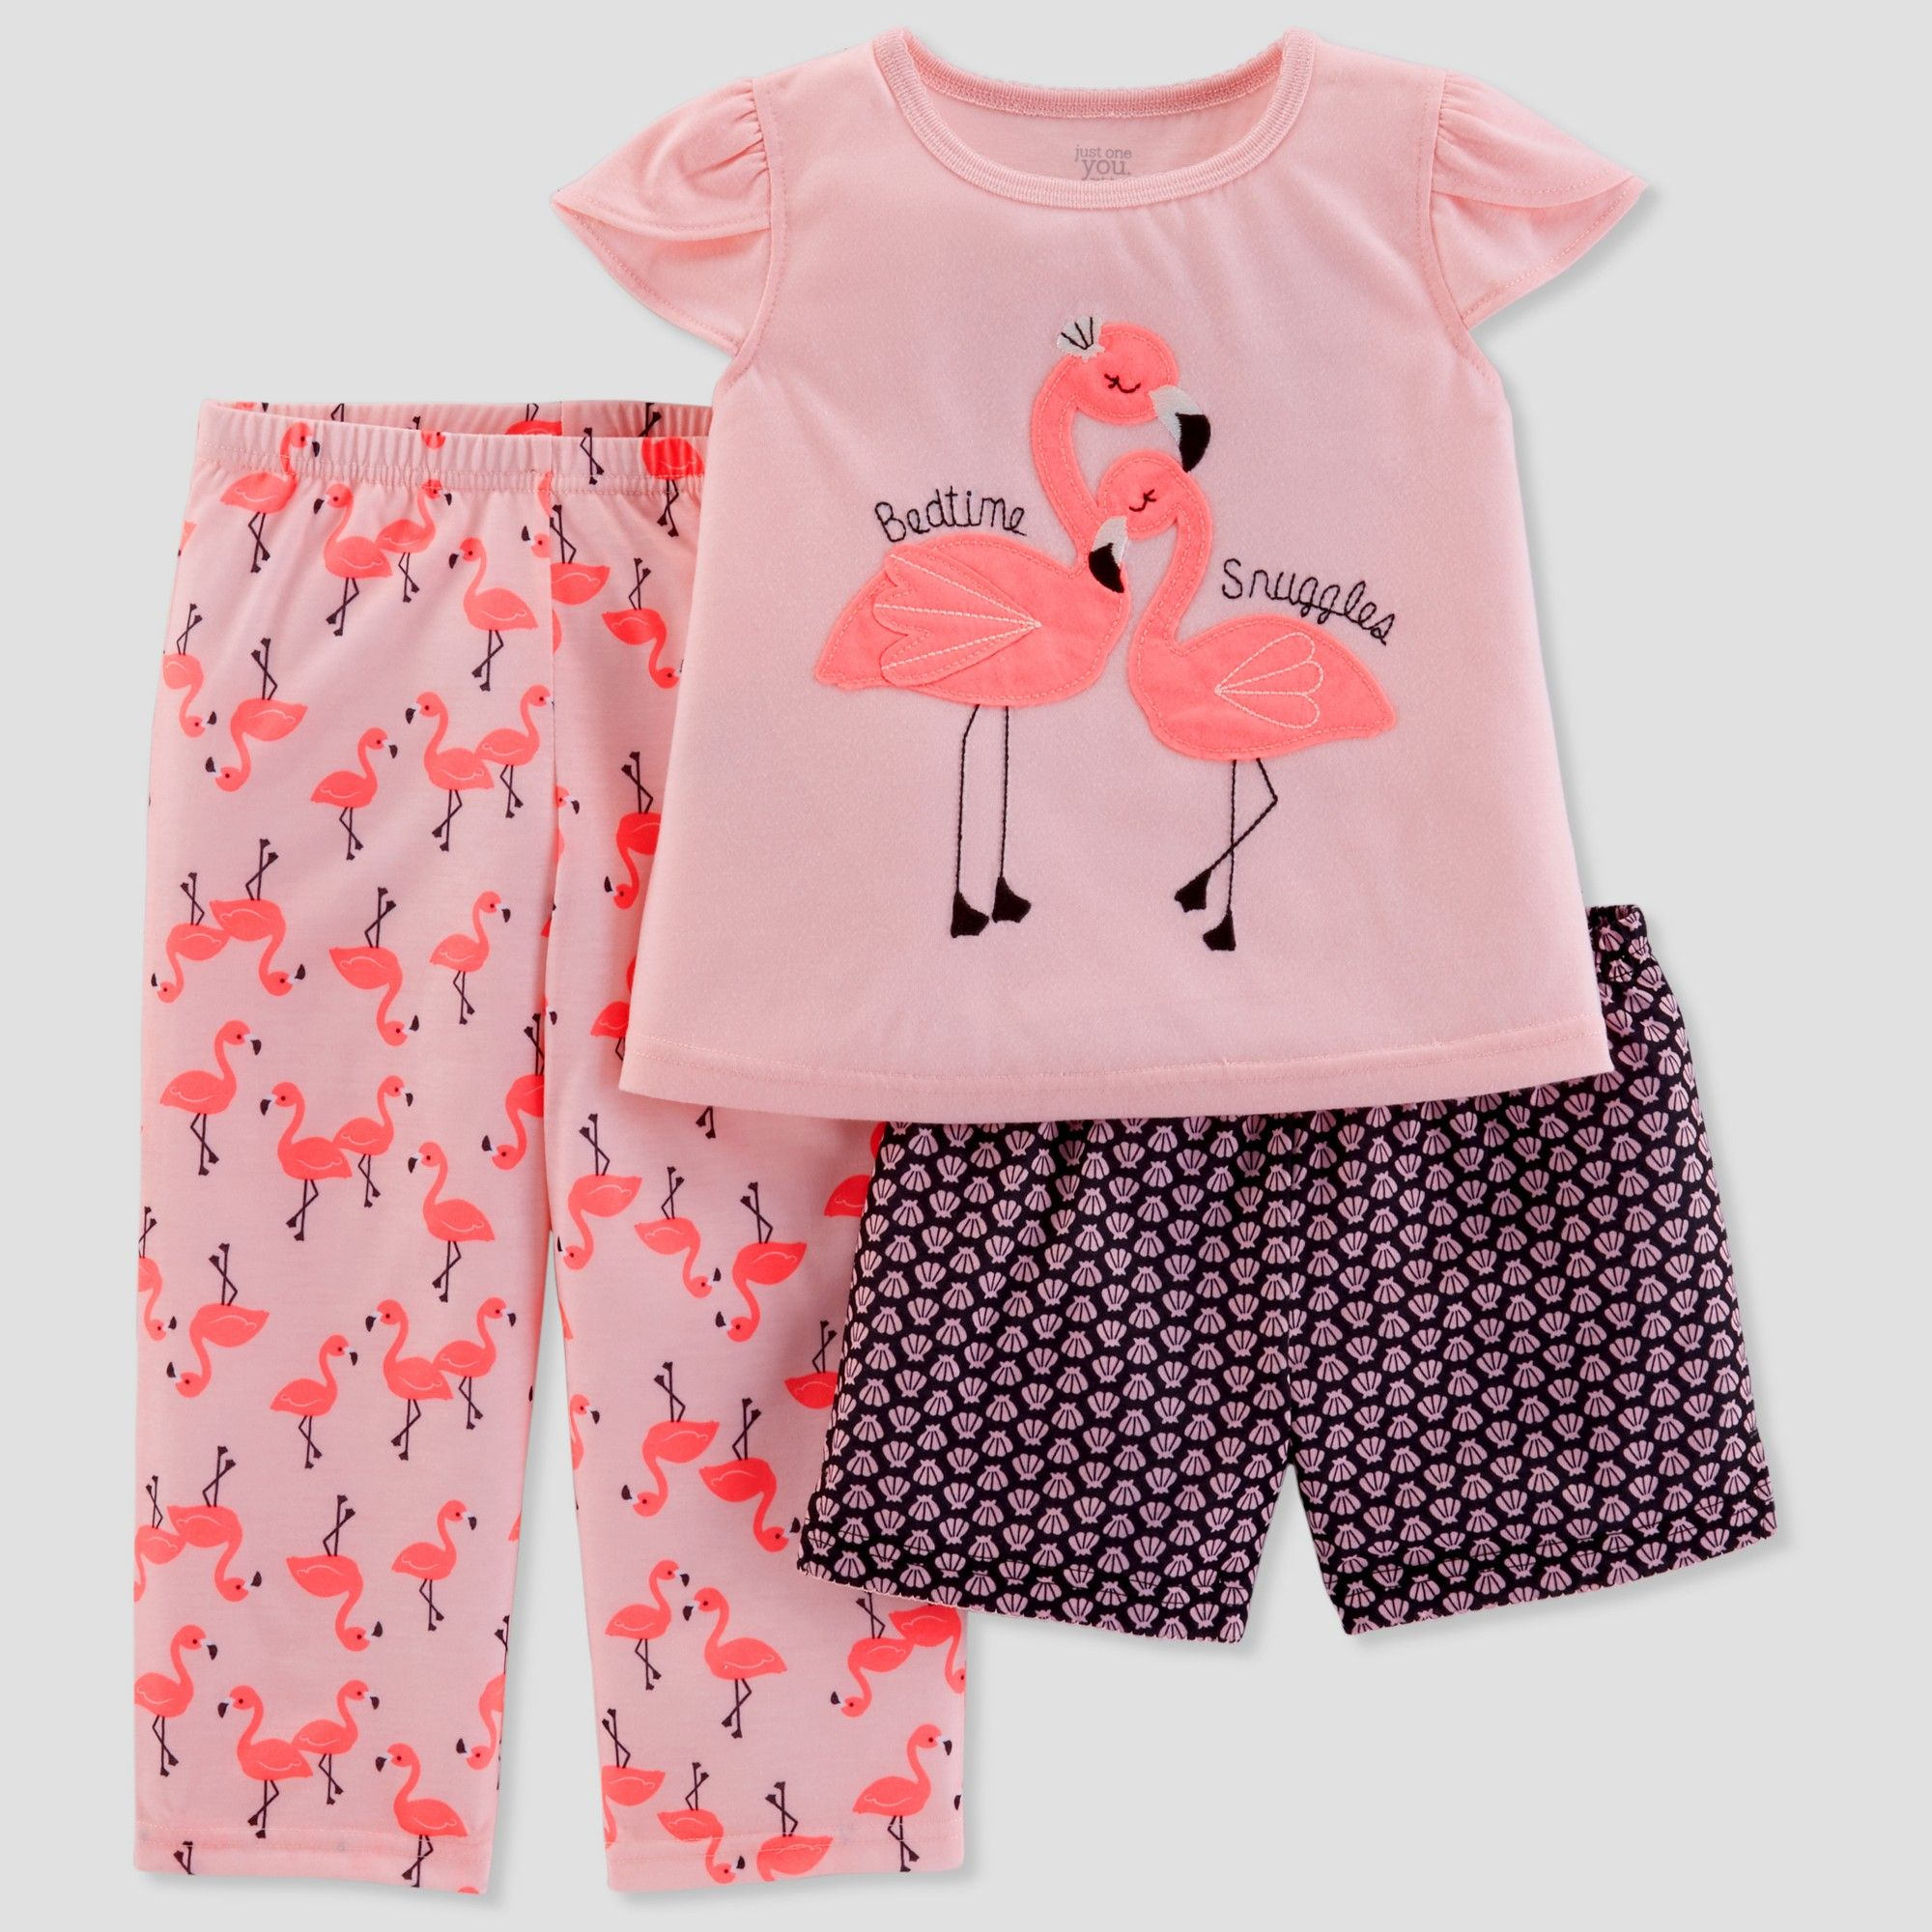 6be7f5115 clearance prices 80e9a 36b12 baby girls 4pc owl south pajama set ...